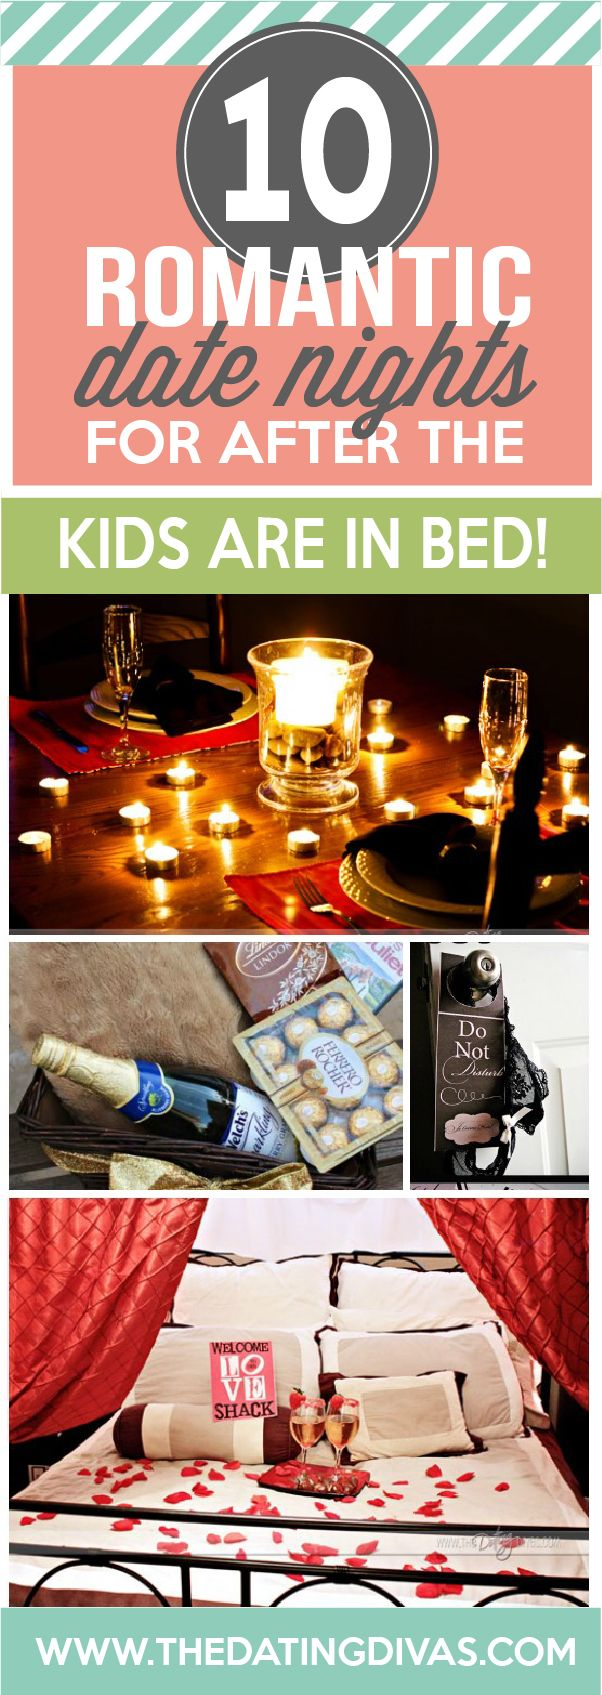 10 Romantic Date Nights for AFTER the kids are in bed!!!